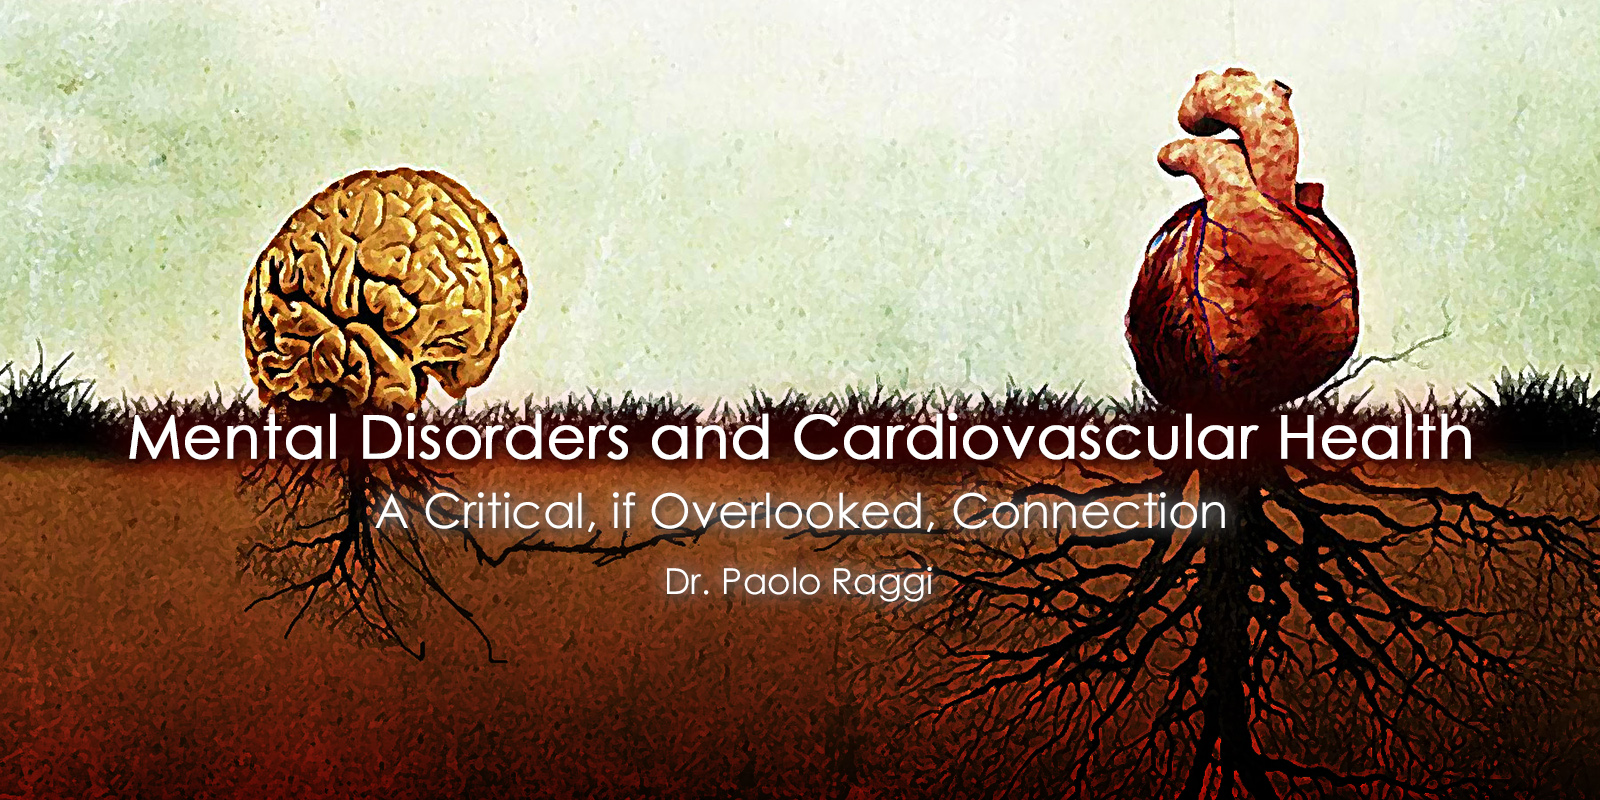 Mental Disorders and Cardiovascular Health